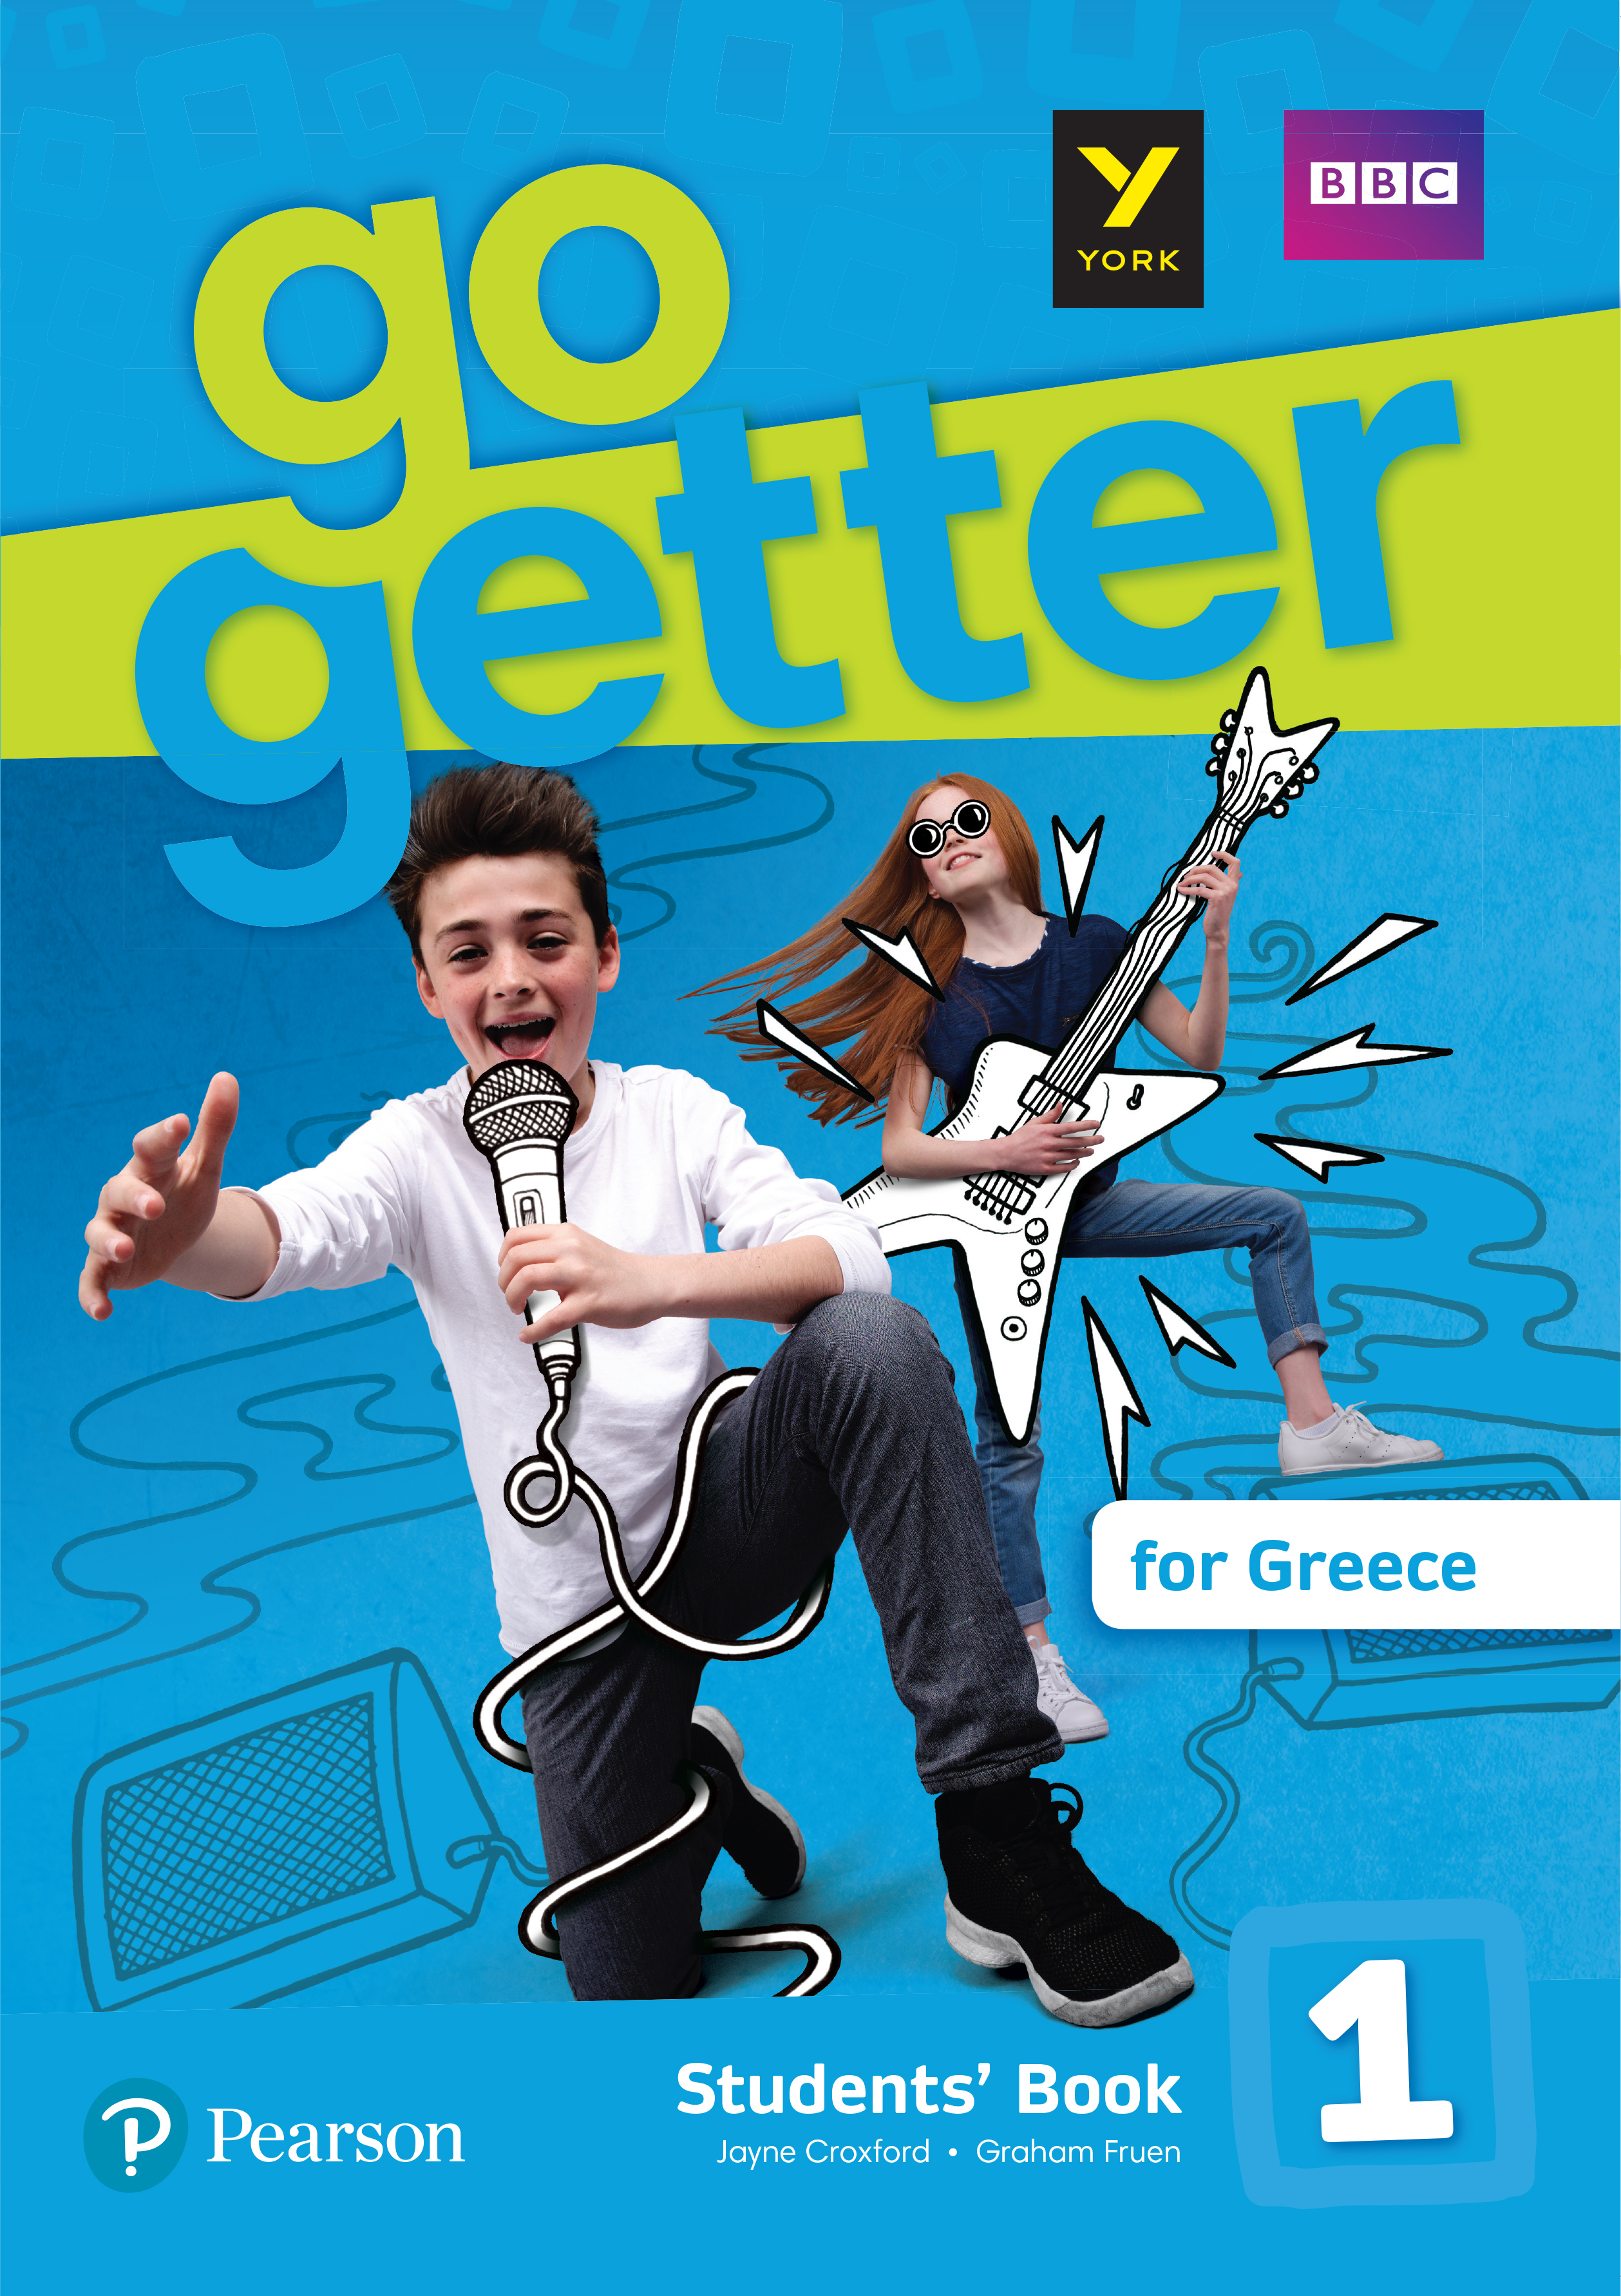 Go pdf the getter book